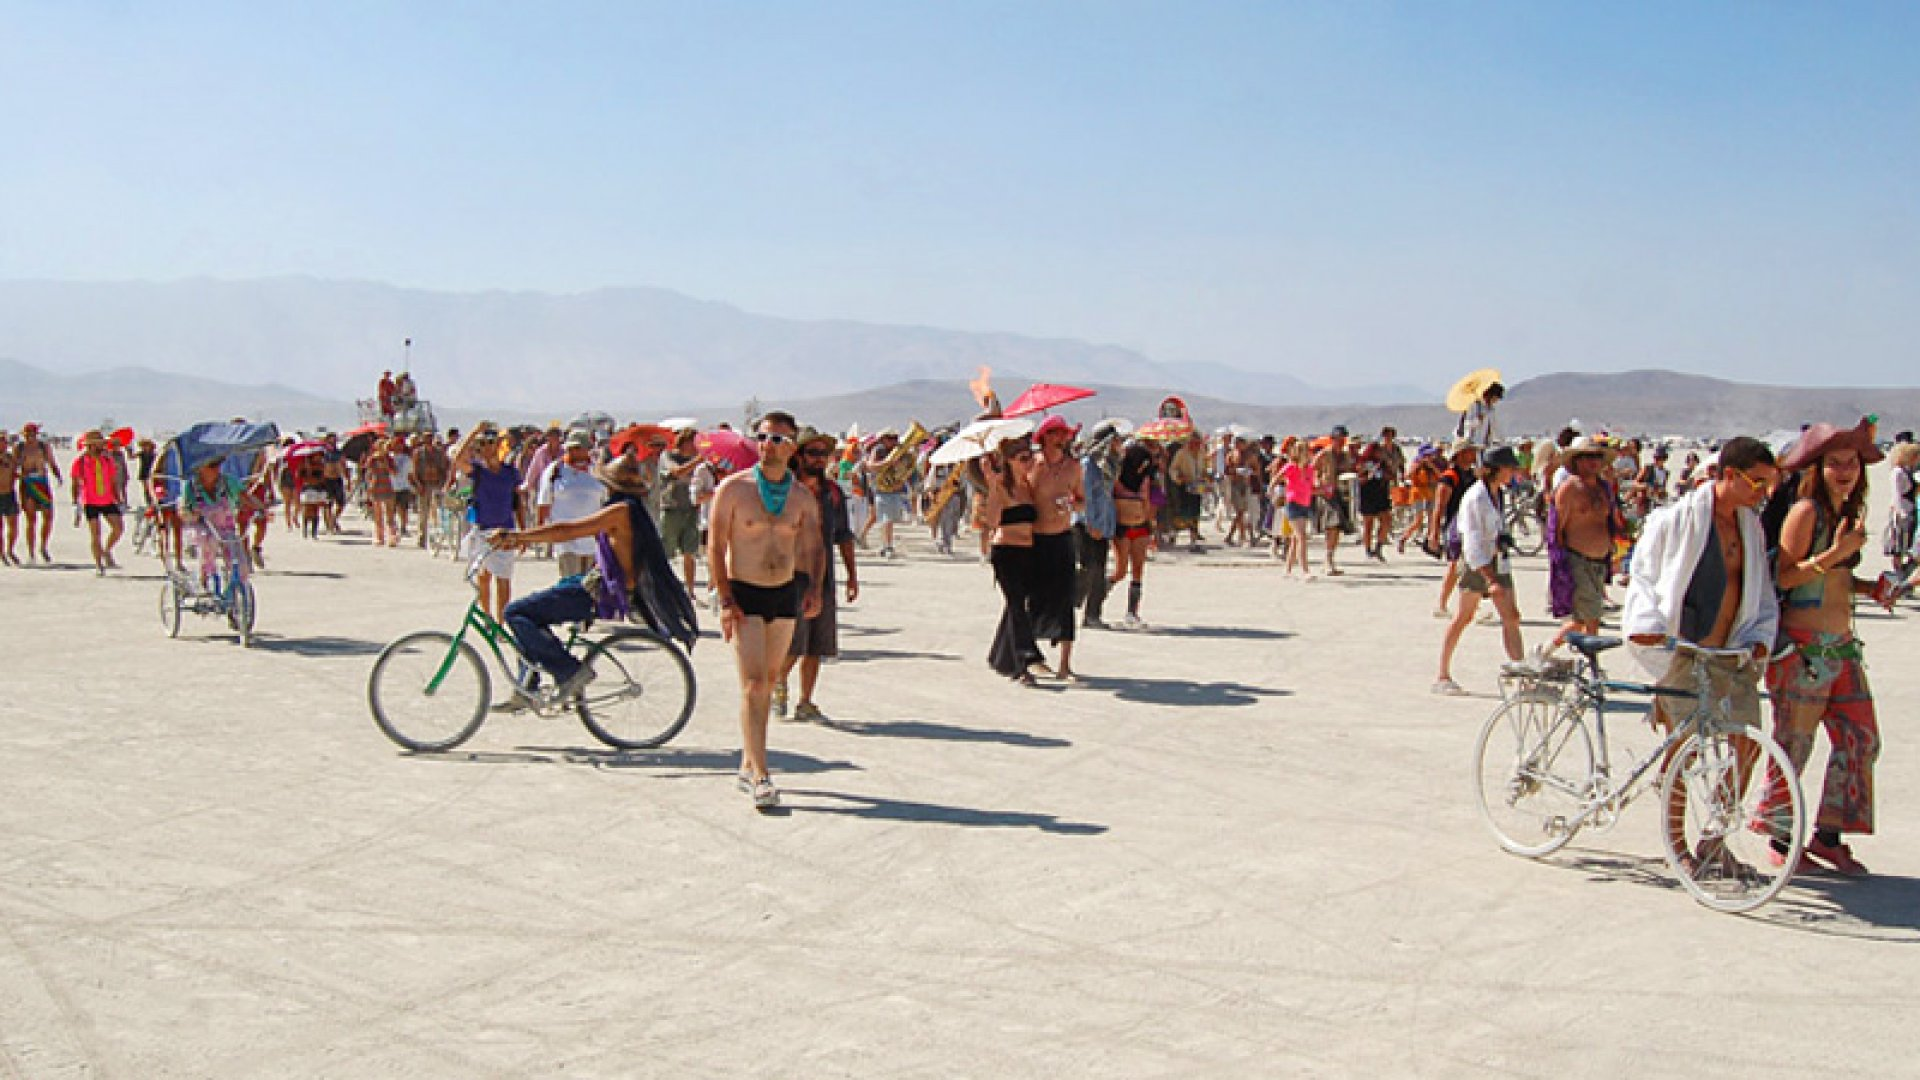 Startup Founders Prepping Wacky Projects for Burning Man